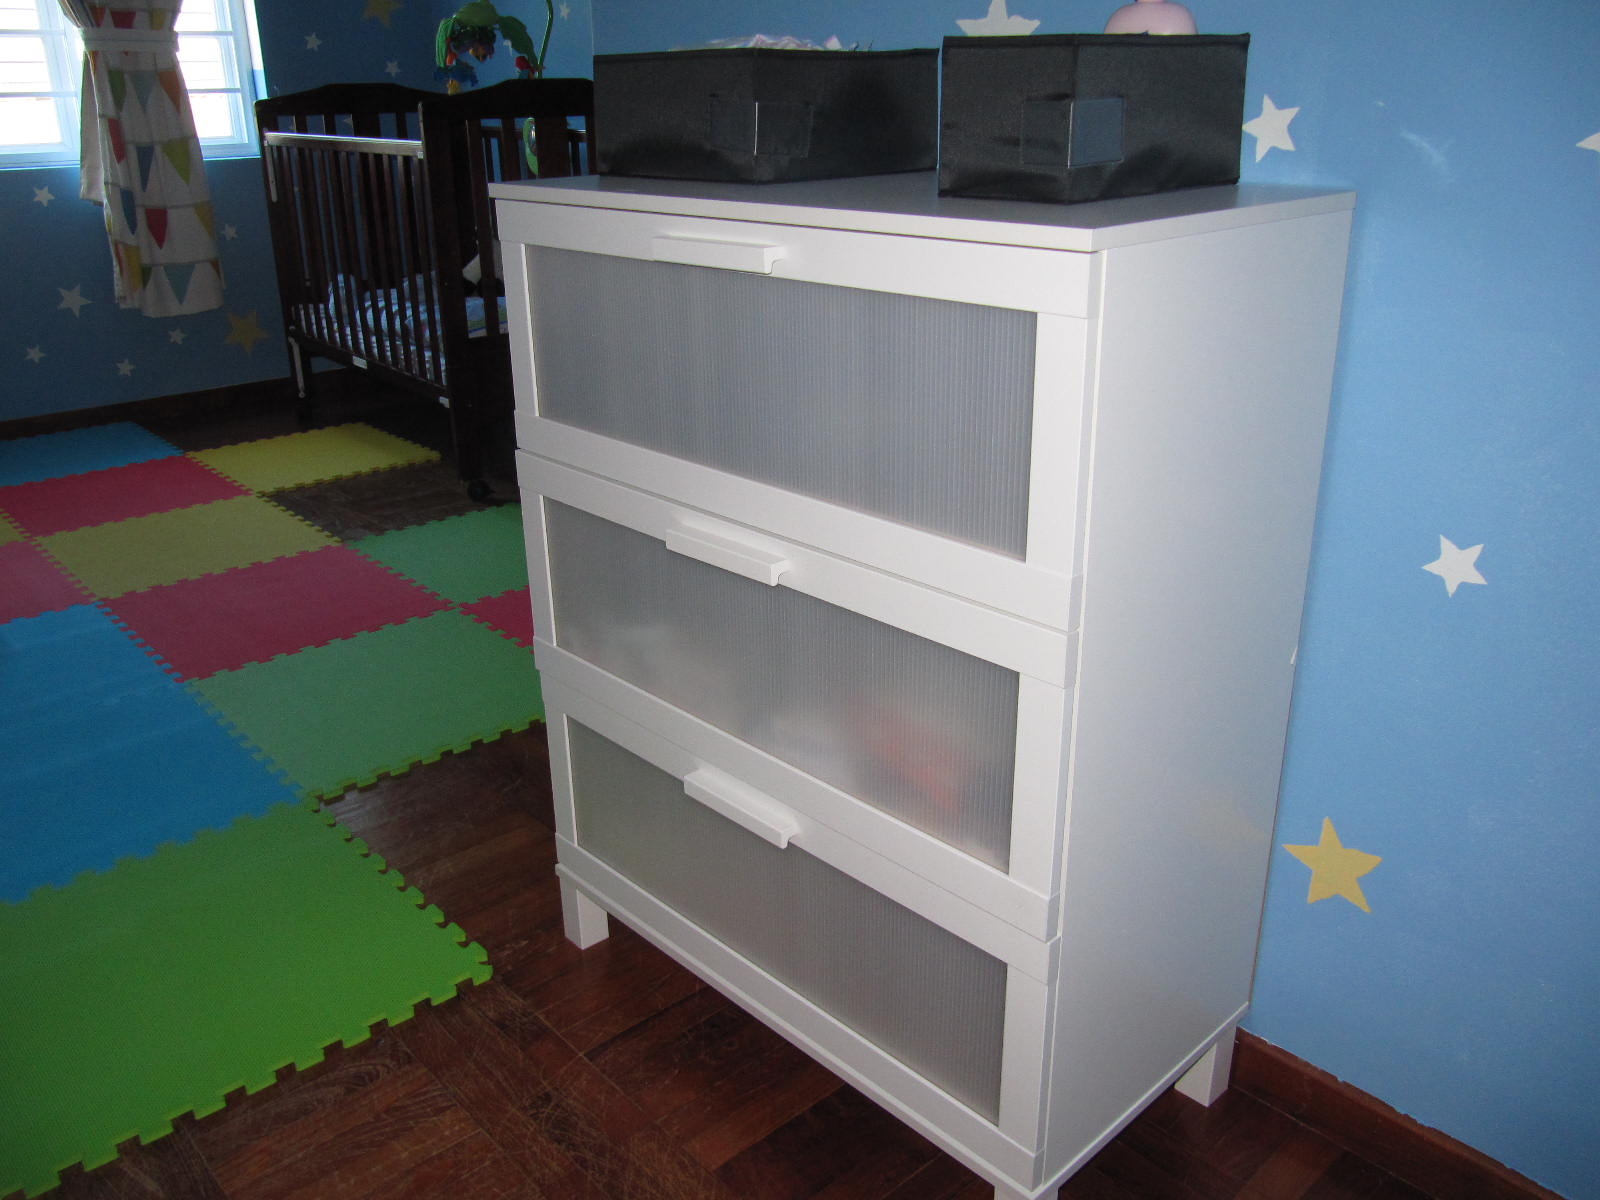 Ikea Schrank Für Waschmaschine ~   pegs are still bugging me I shall make an enquiry with IKEA today